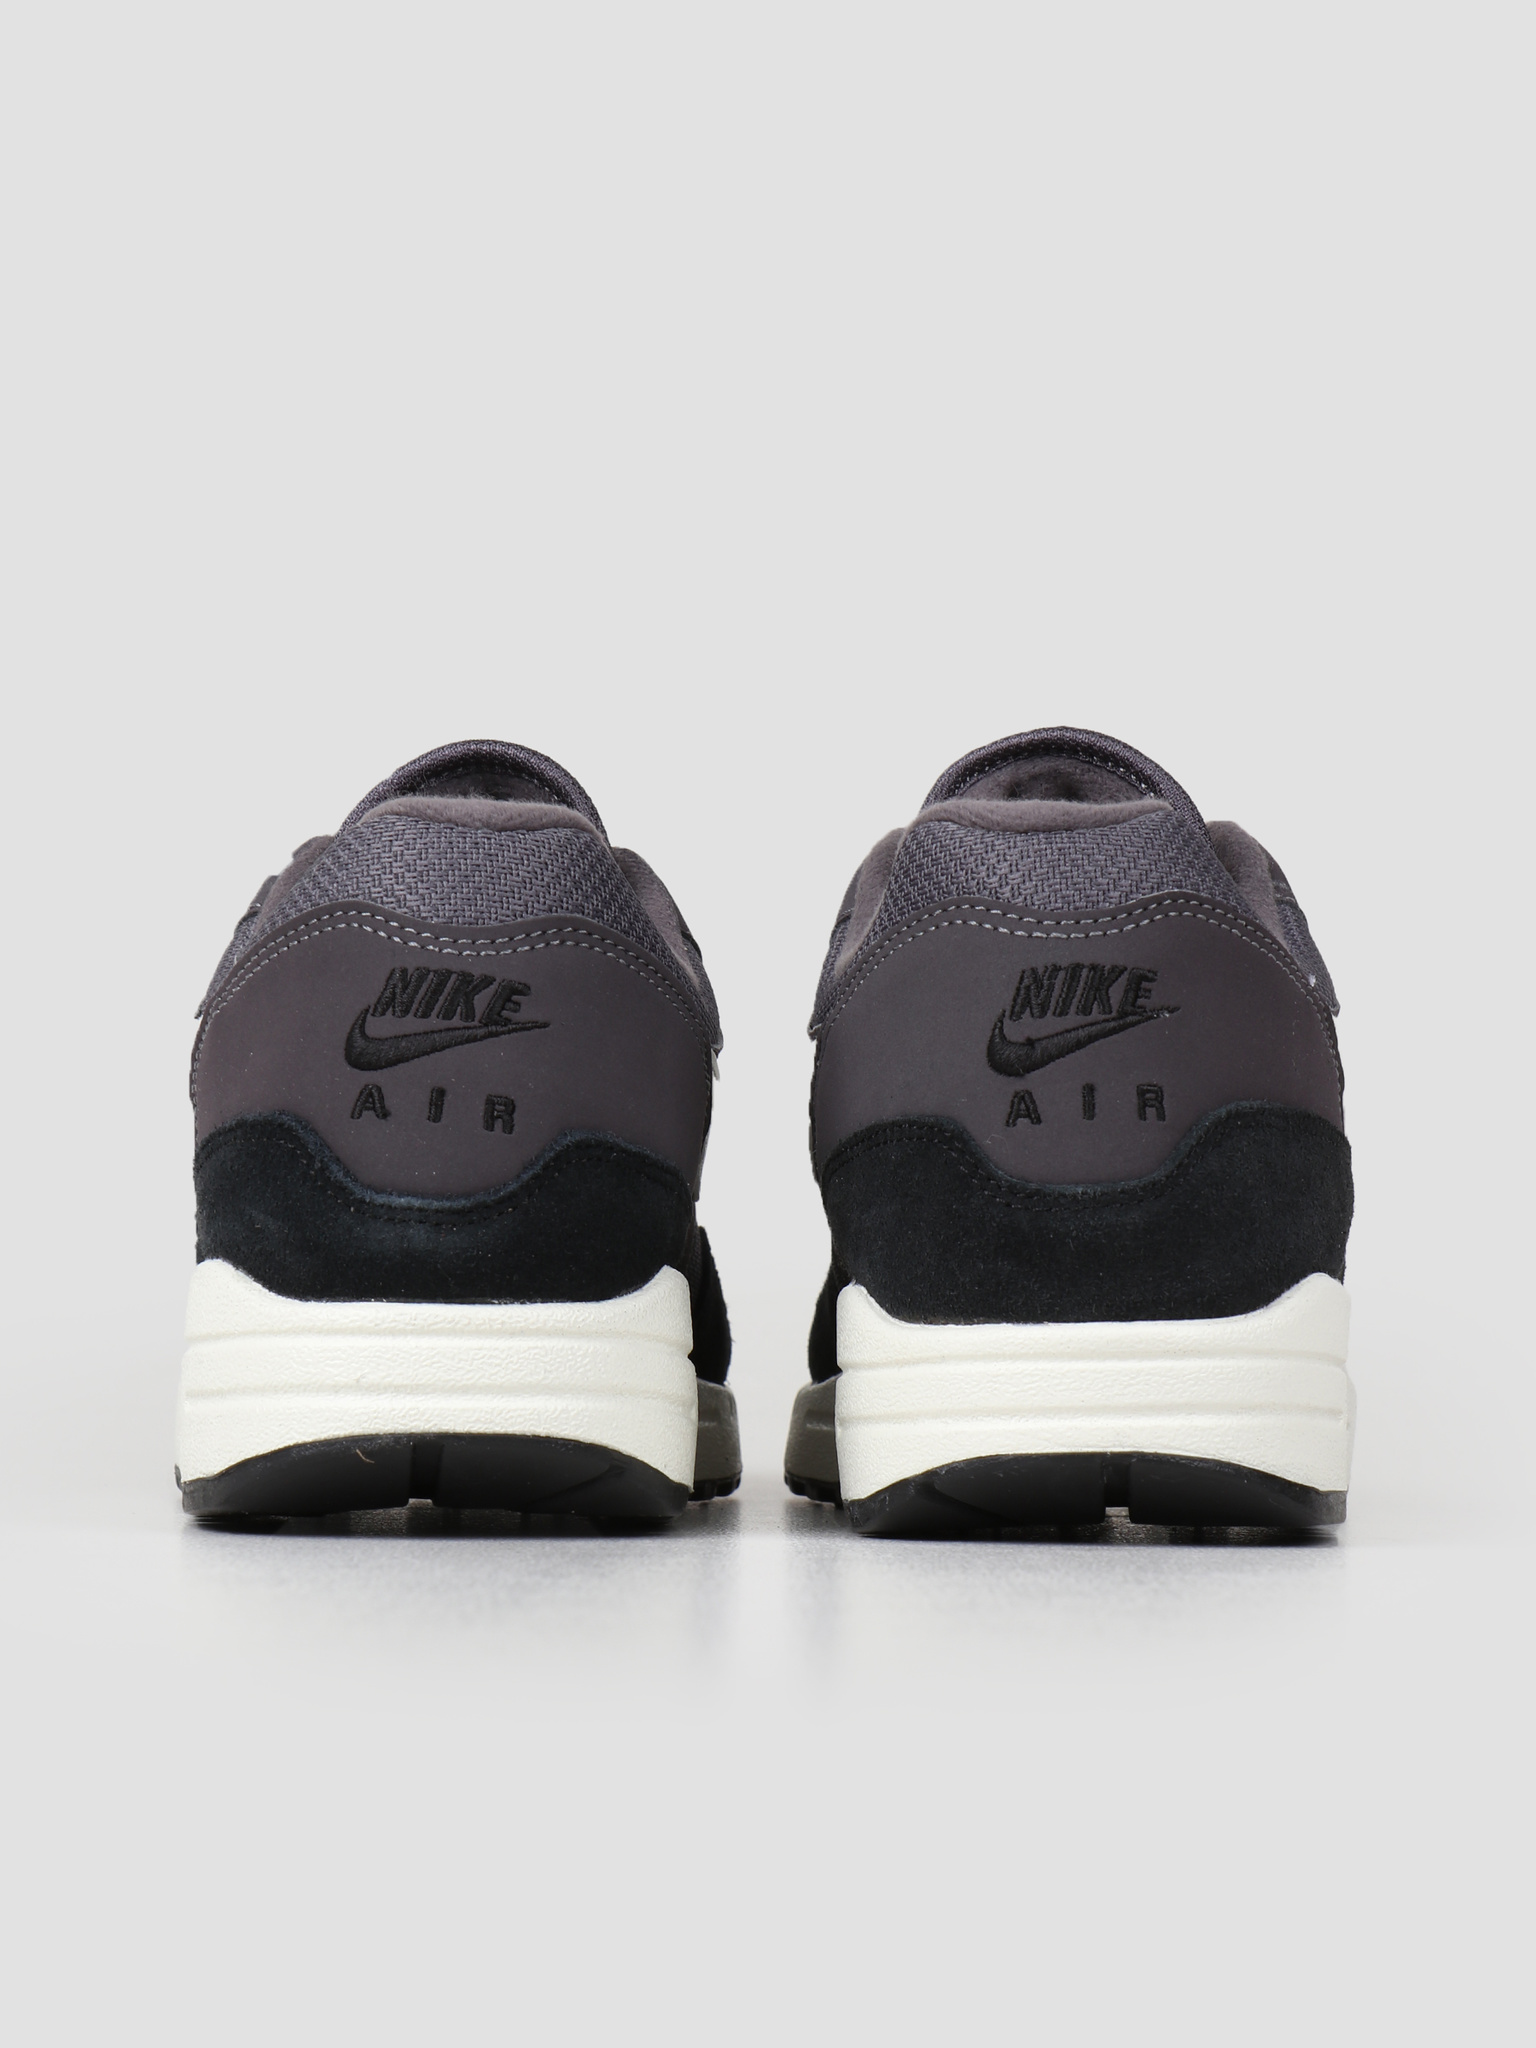 new style 34f77 13d3f Nike Nike Air Max 1 Shoe Thunder Grey Sail-Sail-Black Ah8145-012